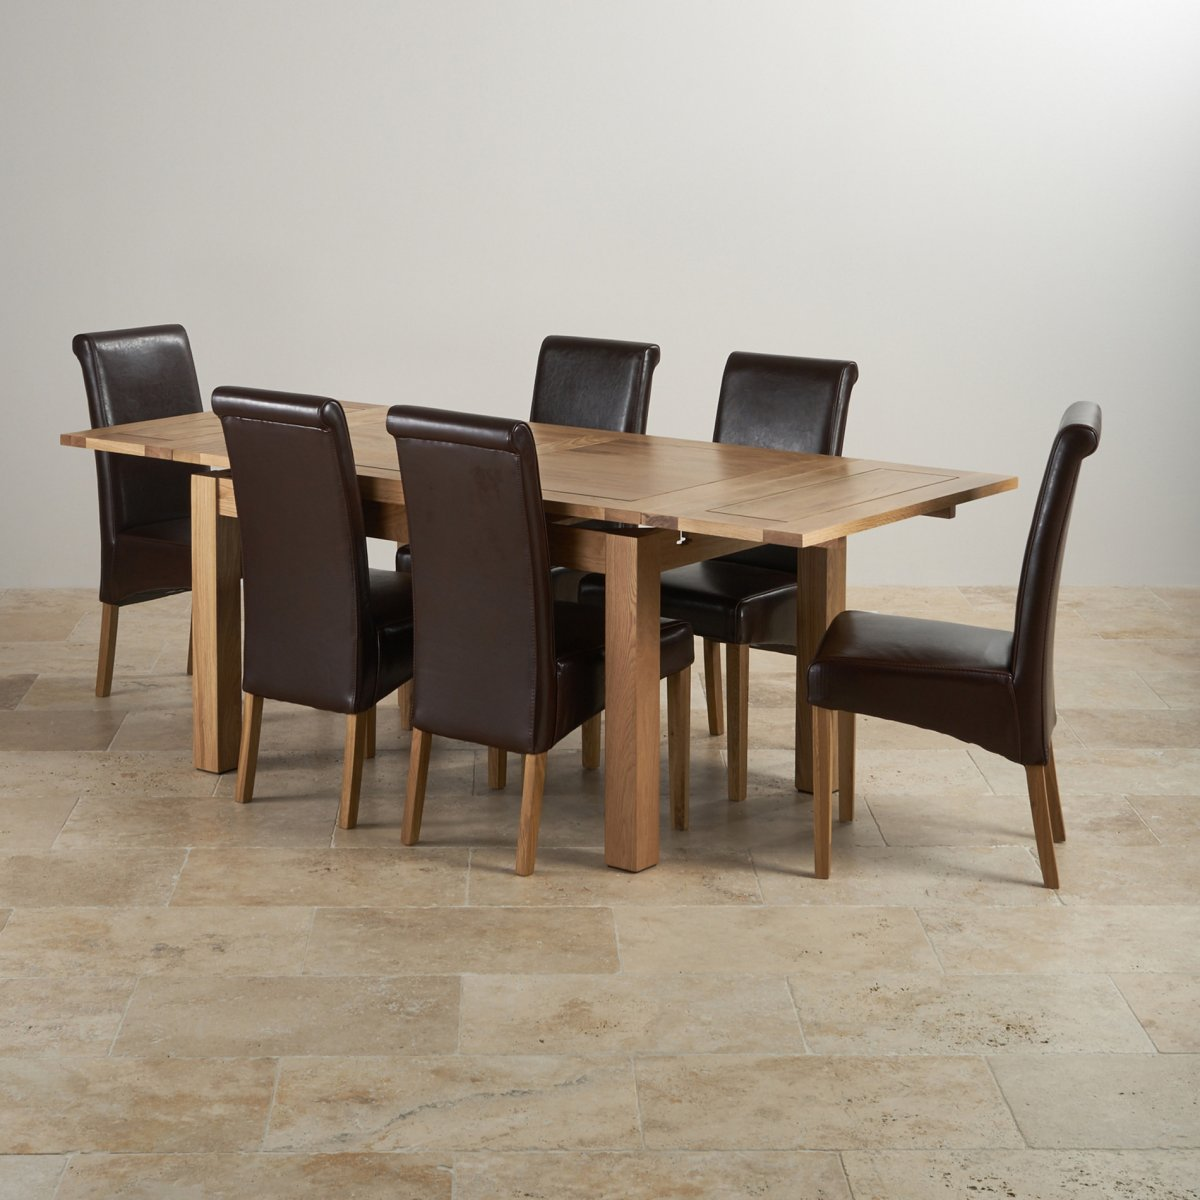 Dorset Oak 4ft 7 Quot Dining Table With 6 Brown Chairs